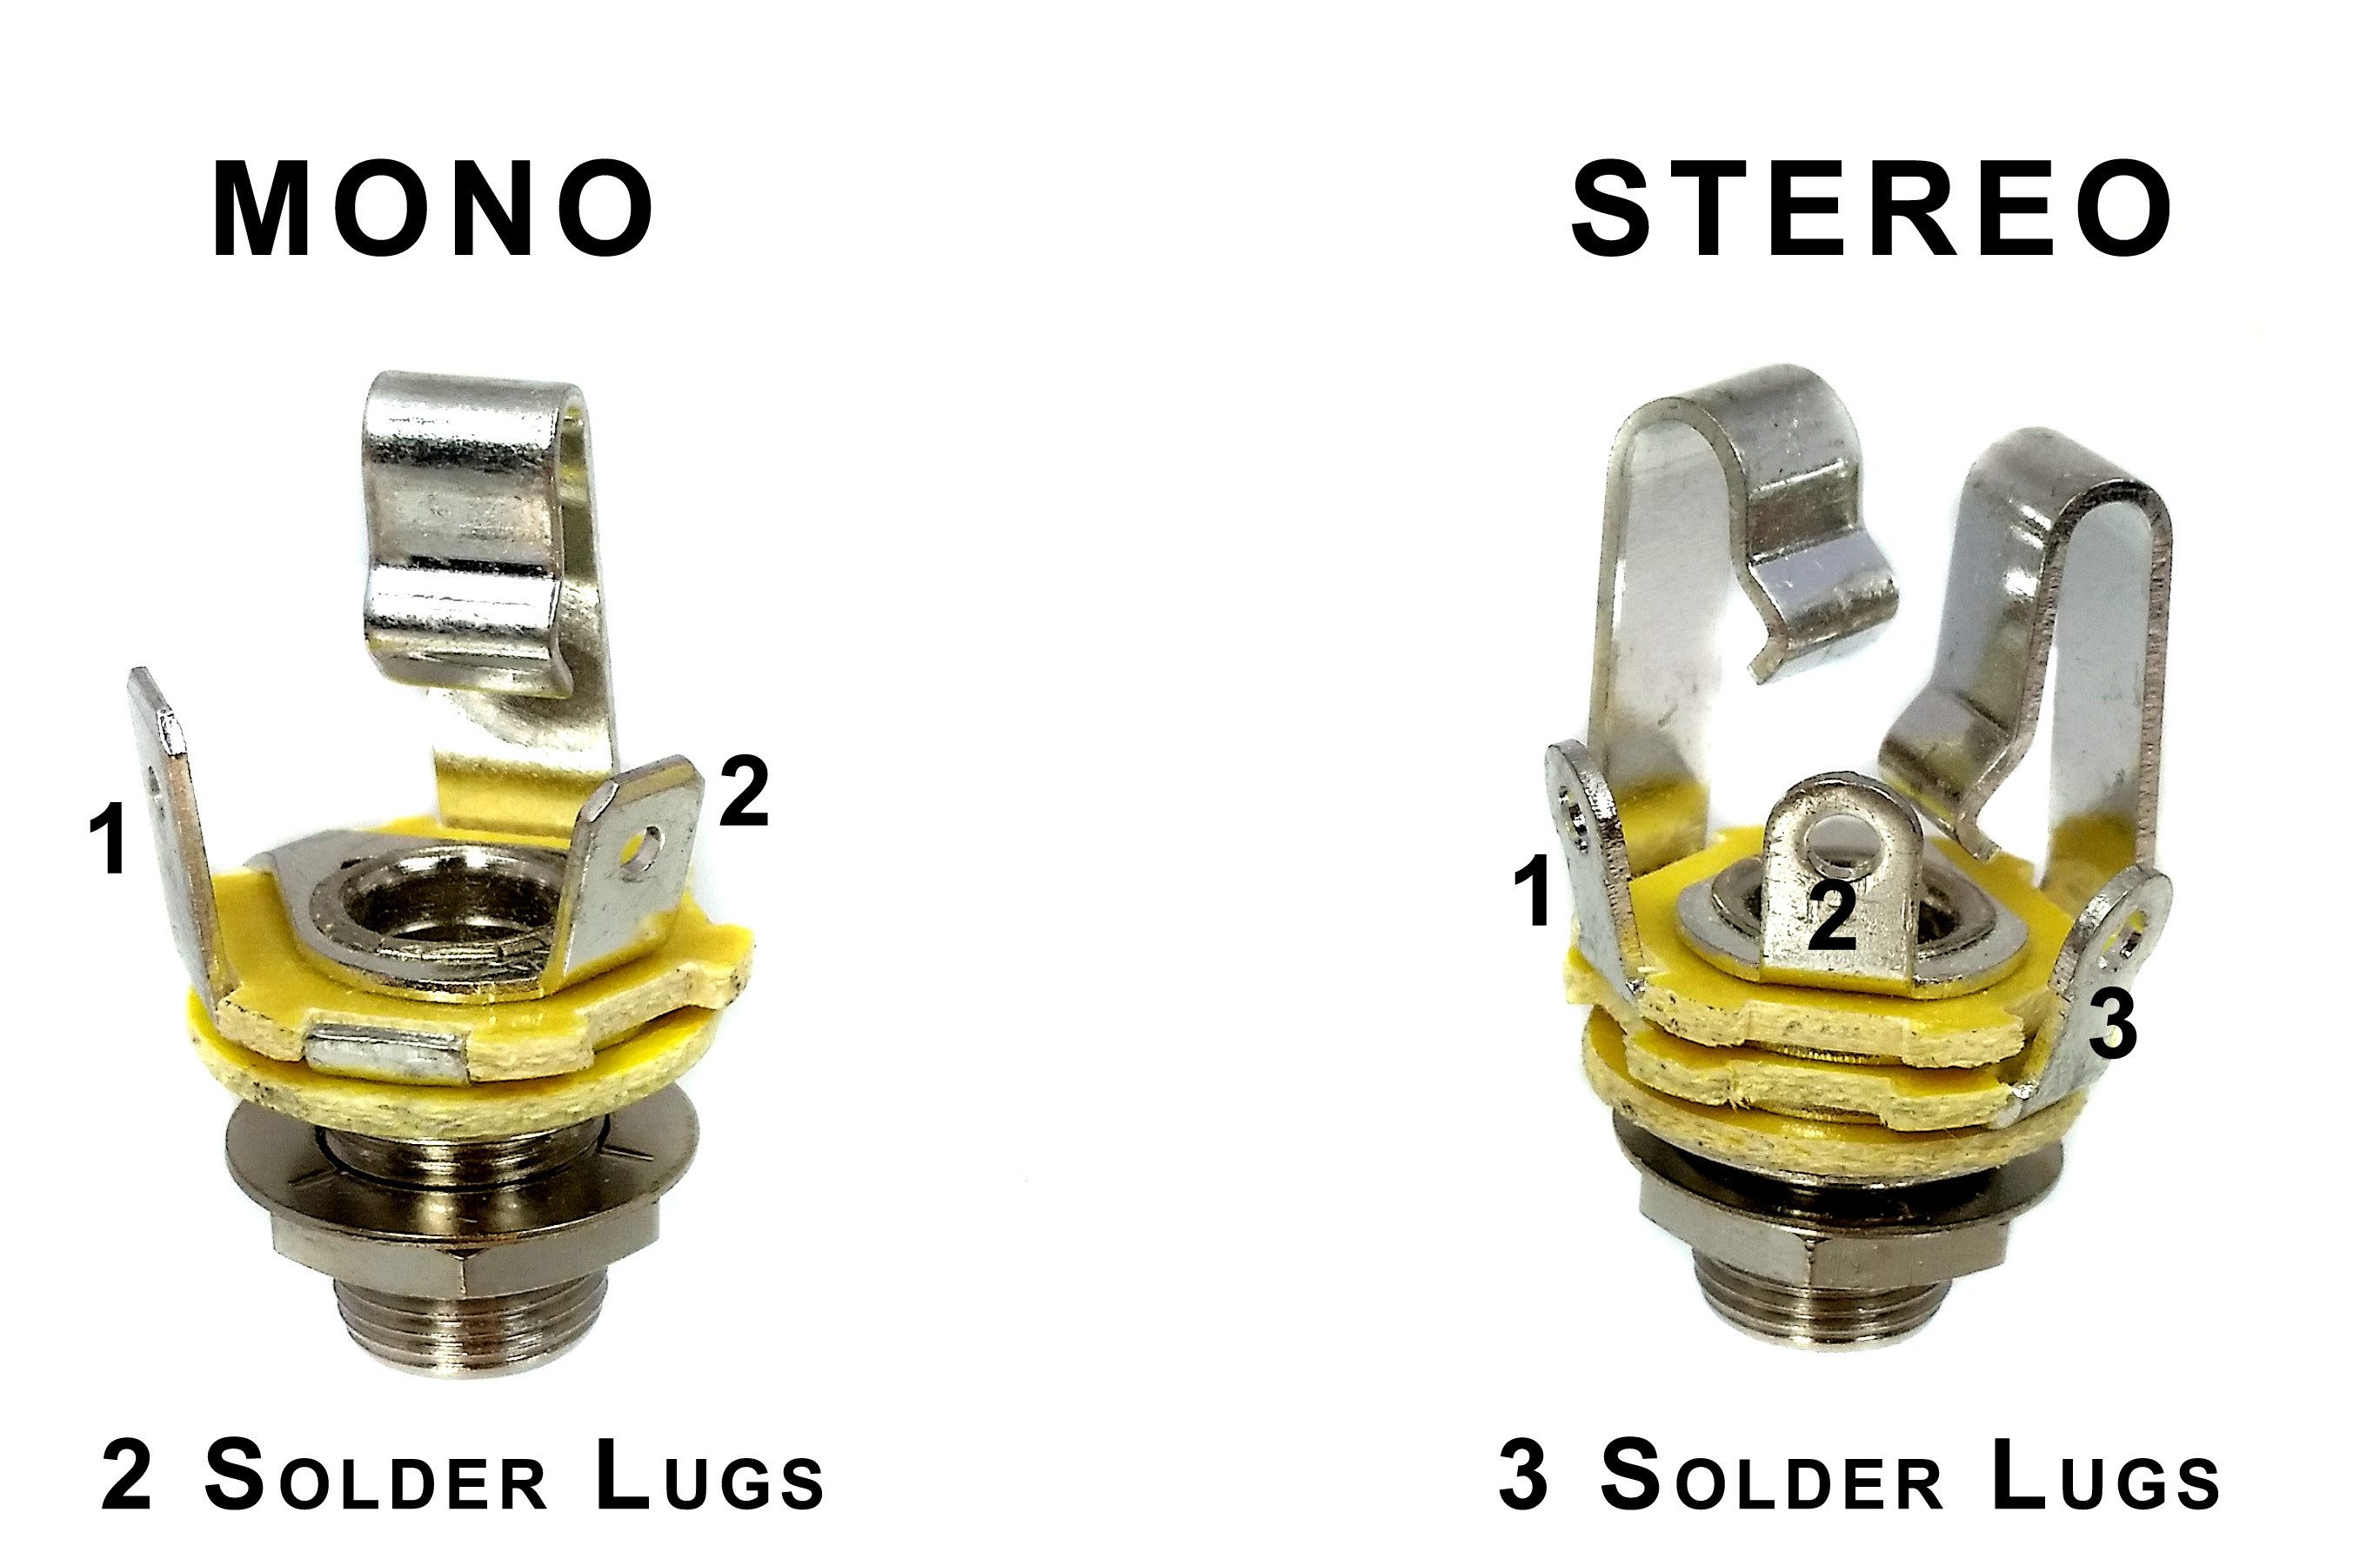 the differences between mono and stereo phone jacks